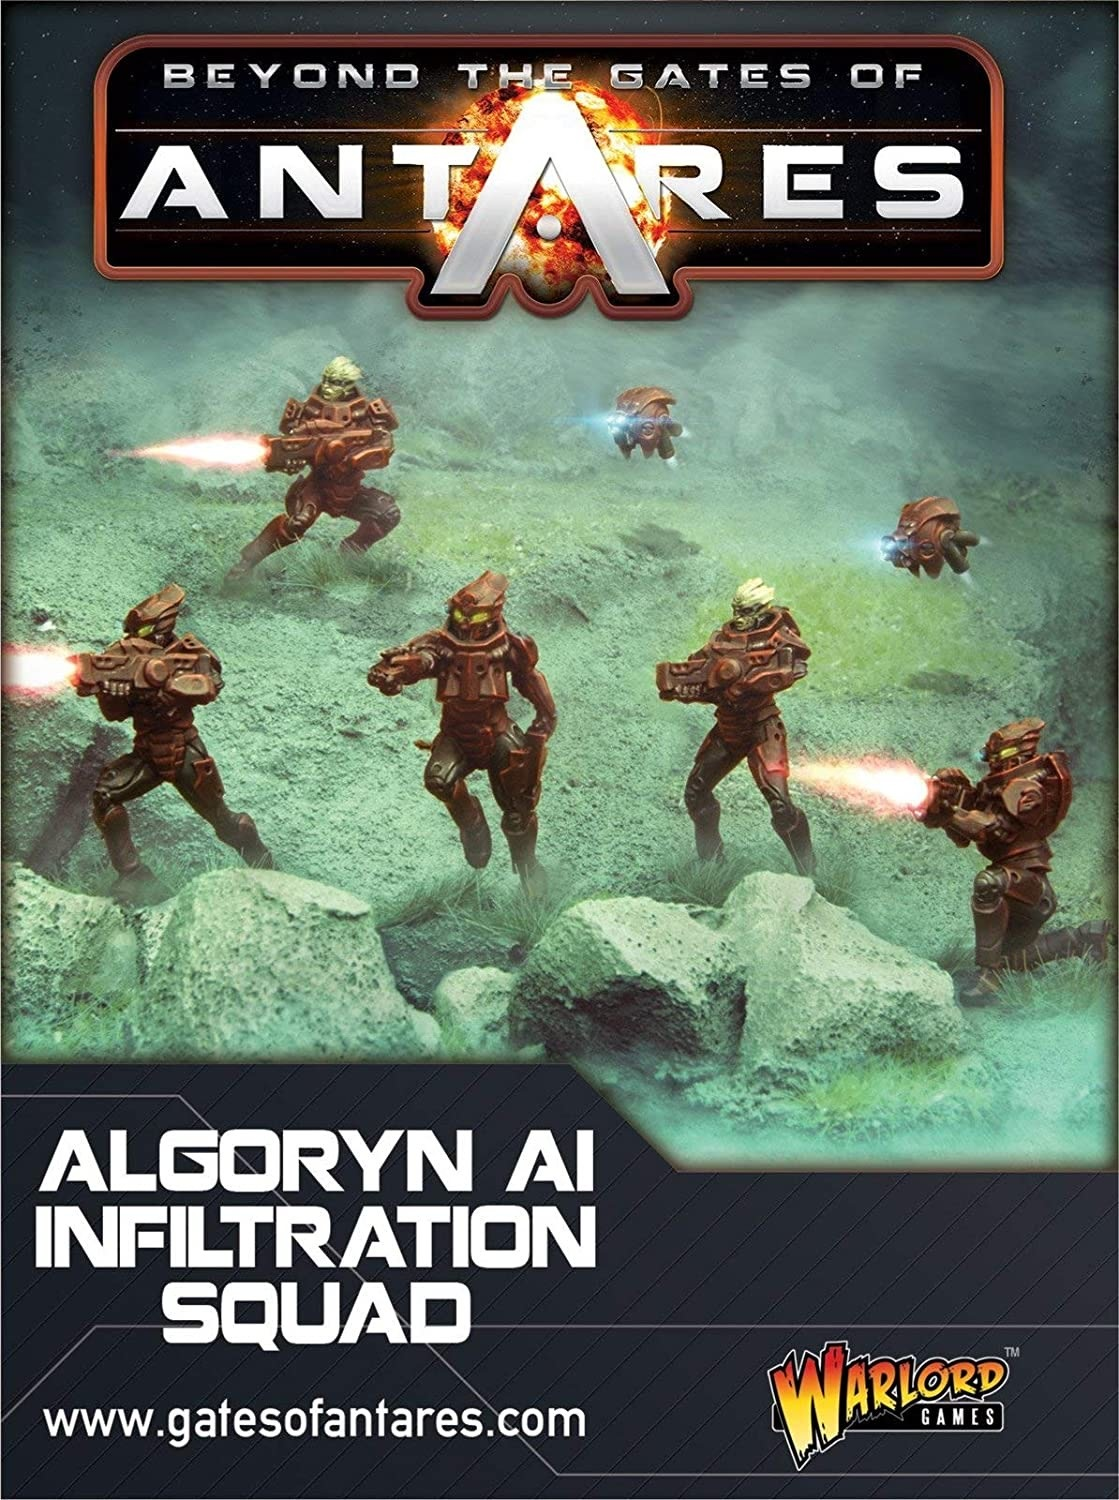 Warlord games Beyond the Gates of Antares: Algoryn- AI Infiltration Squad